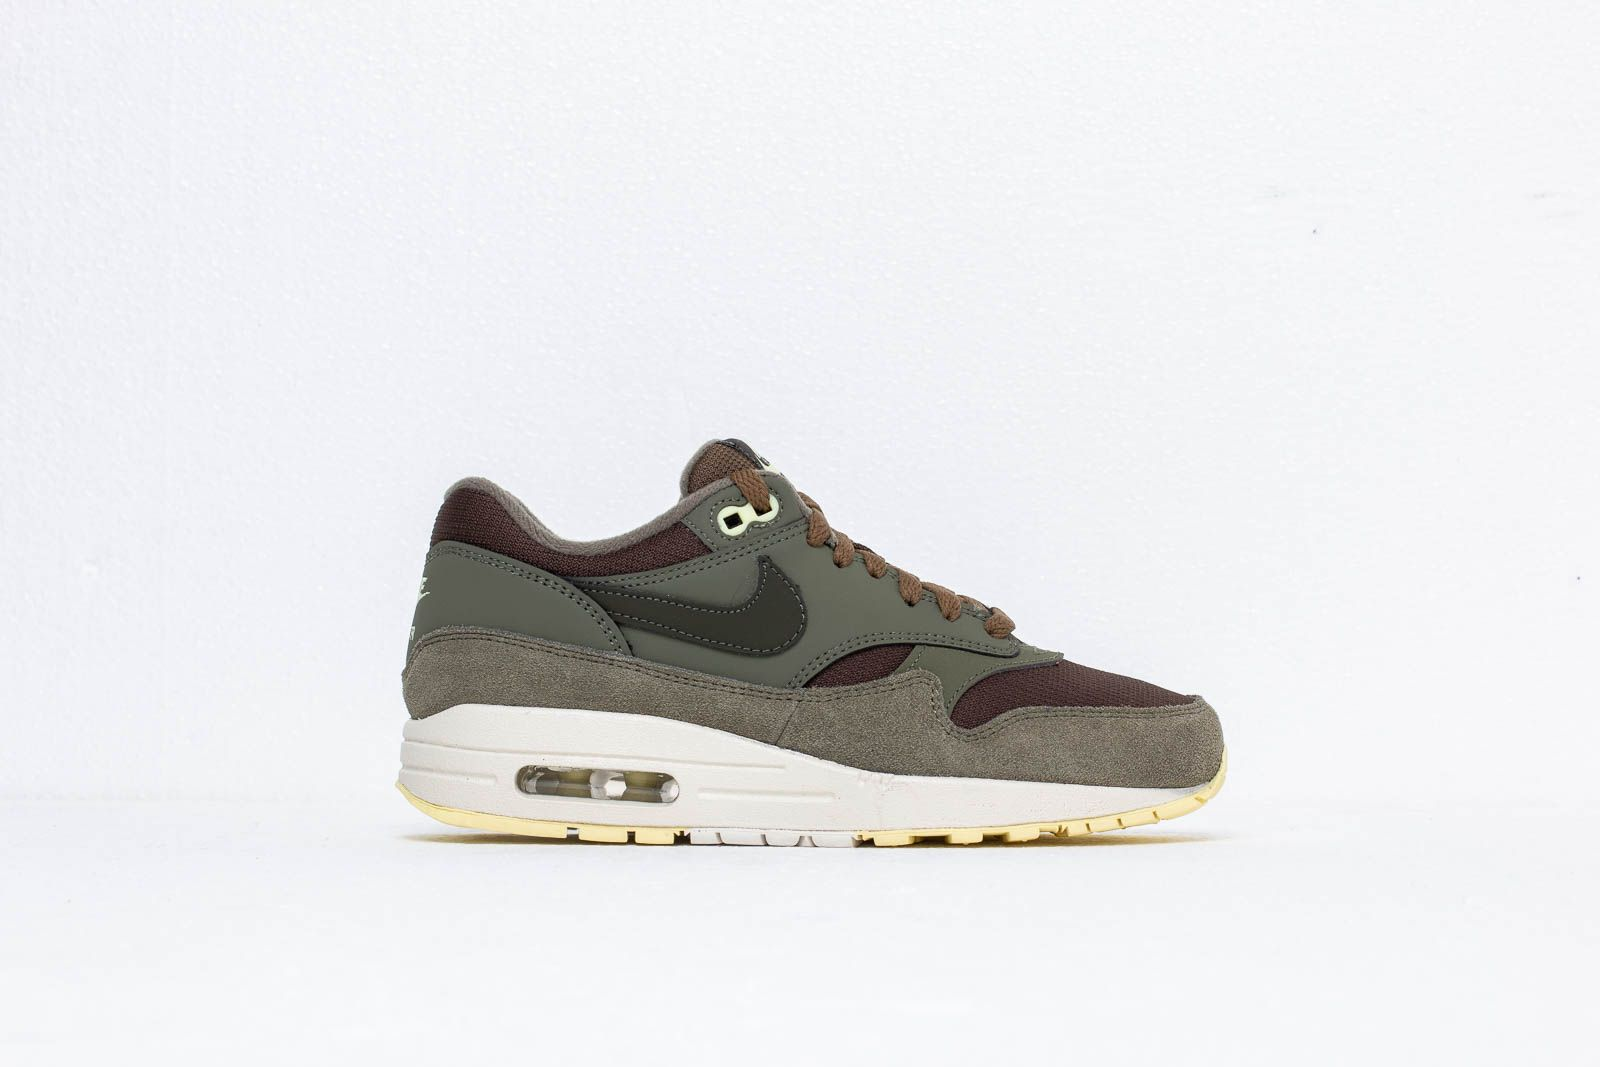 info for 9aabb 419fb Nike Wmns Air Max 1 Sequoia  Sequoia-Medium Olive at a great price £